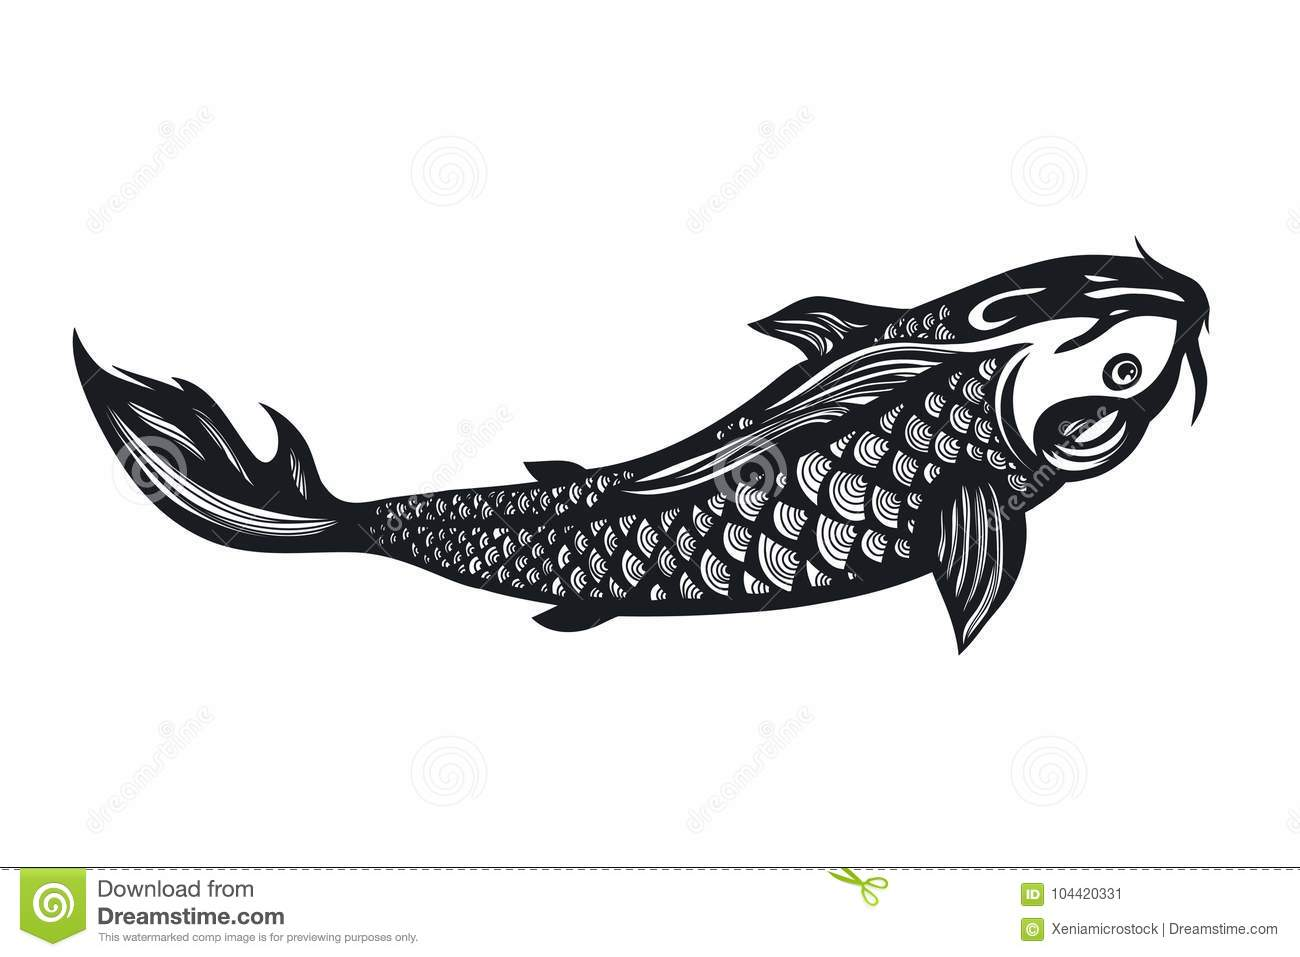 Fish Koi Carp Chinese Symbol Of Good Luck Courage Persistence